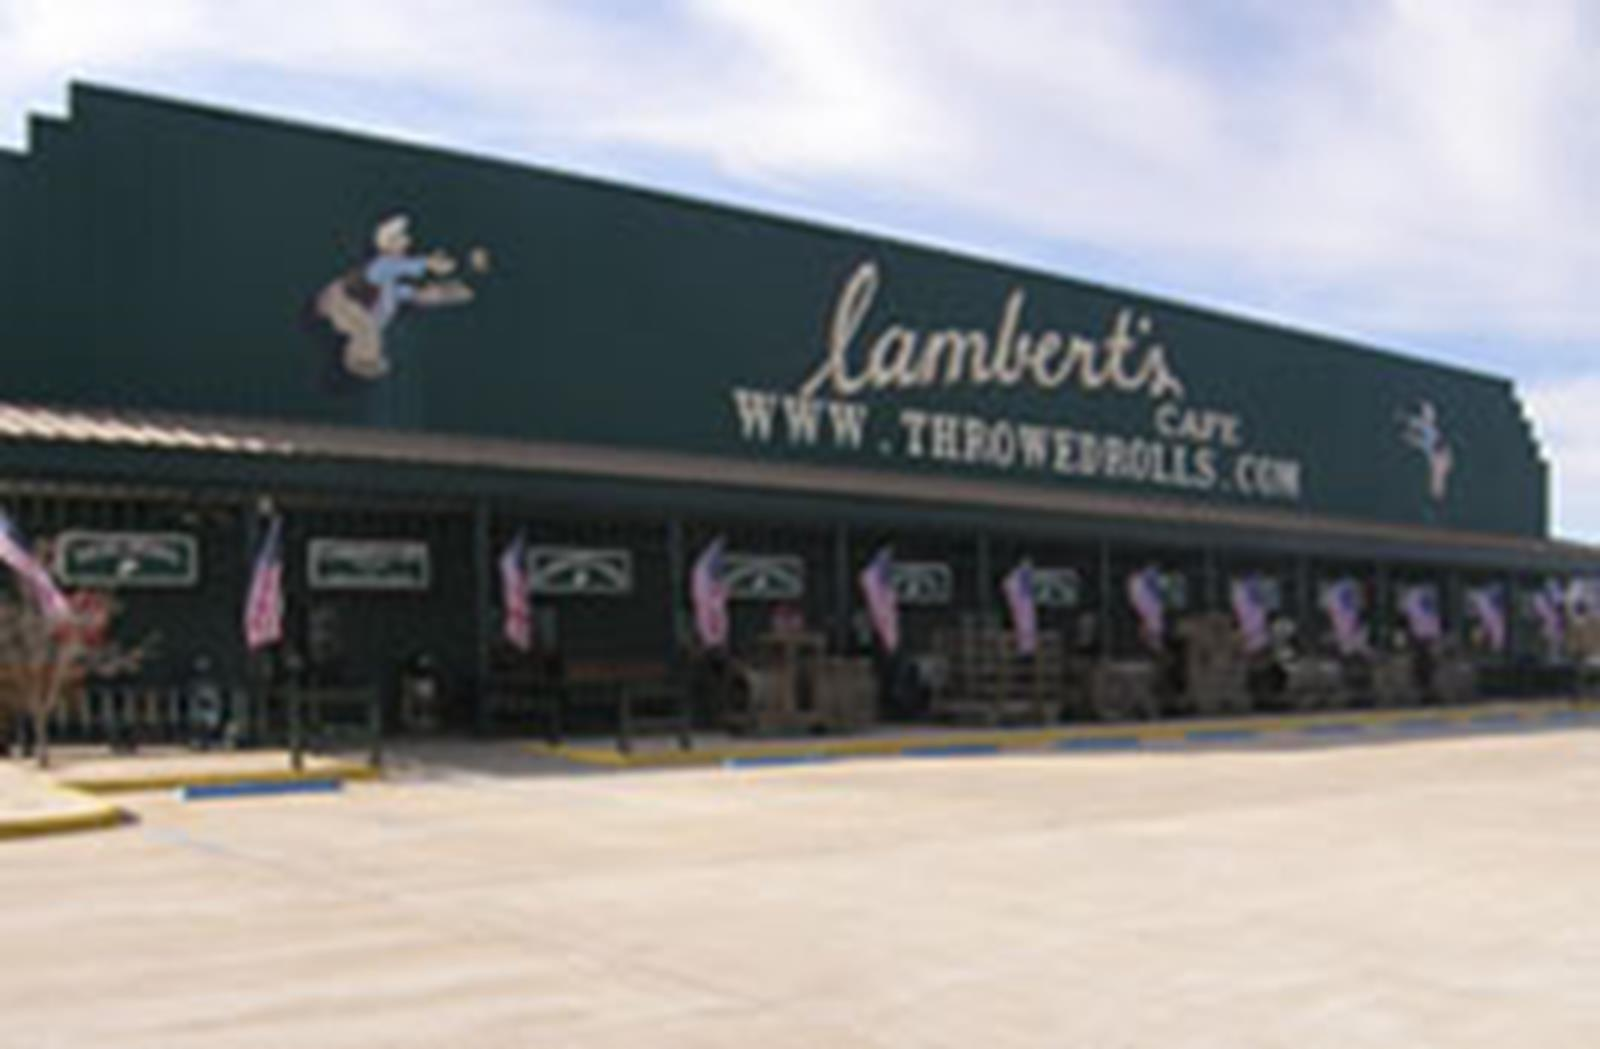 Lambert's Cafe in Sikeston, Missouri. (Photo Courtesy of ThrowedRolls.com)